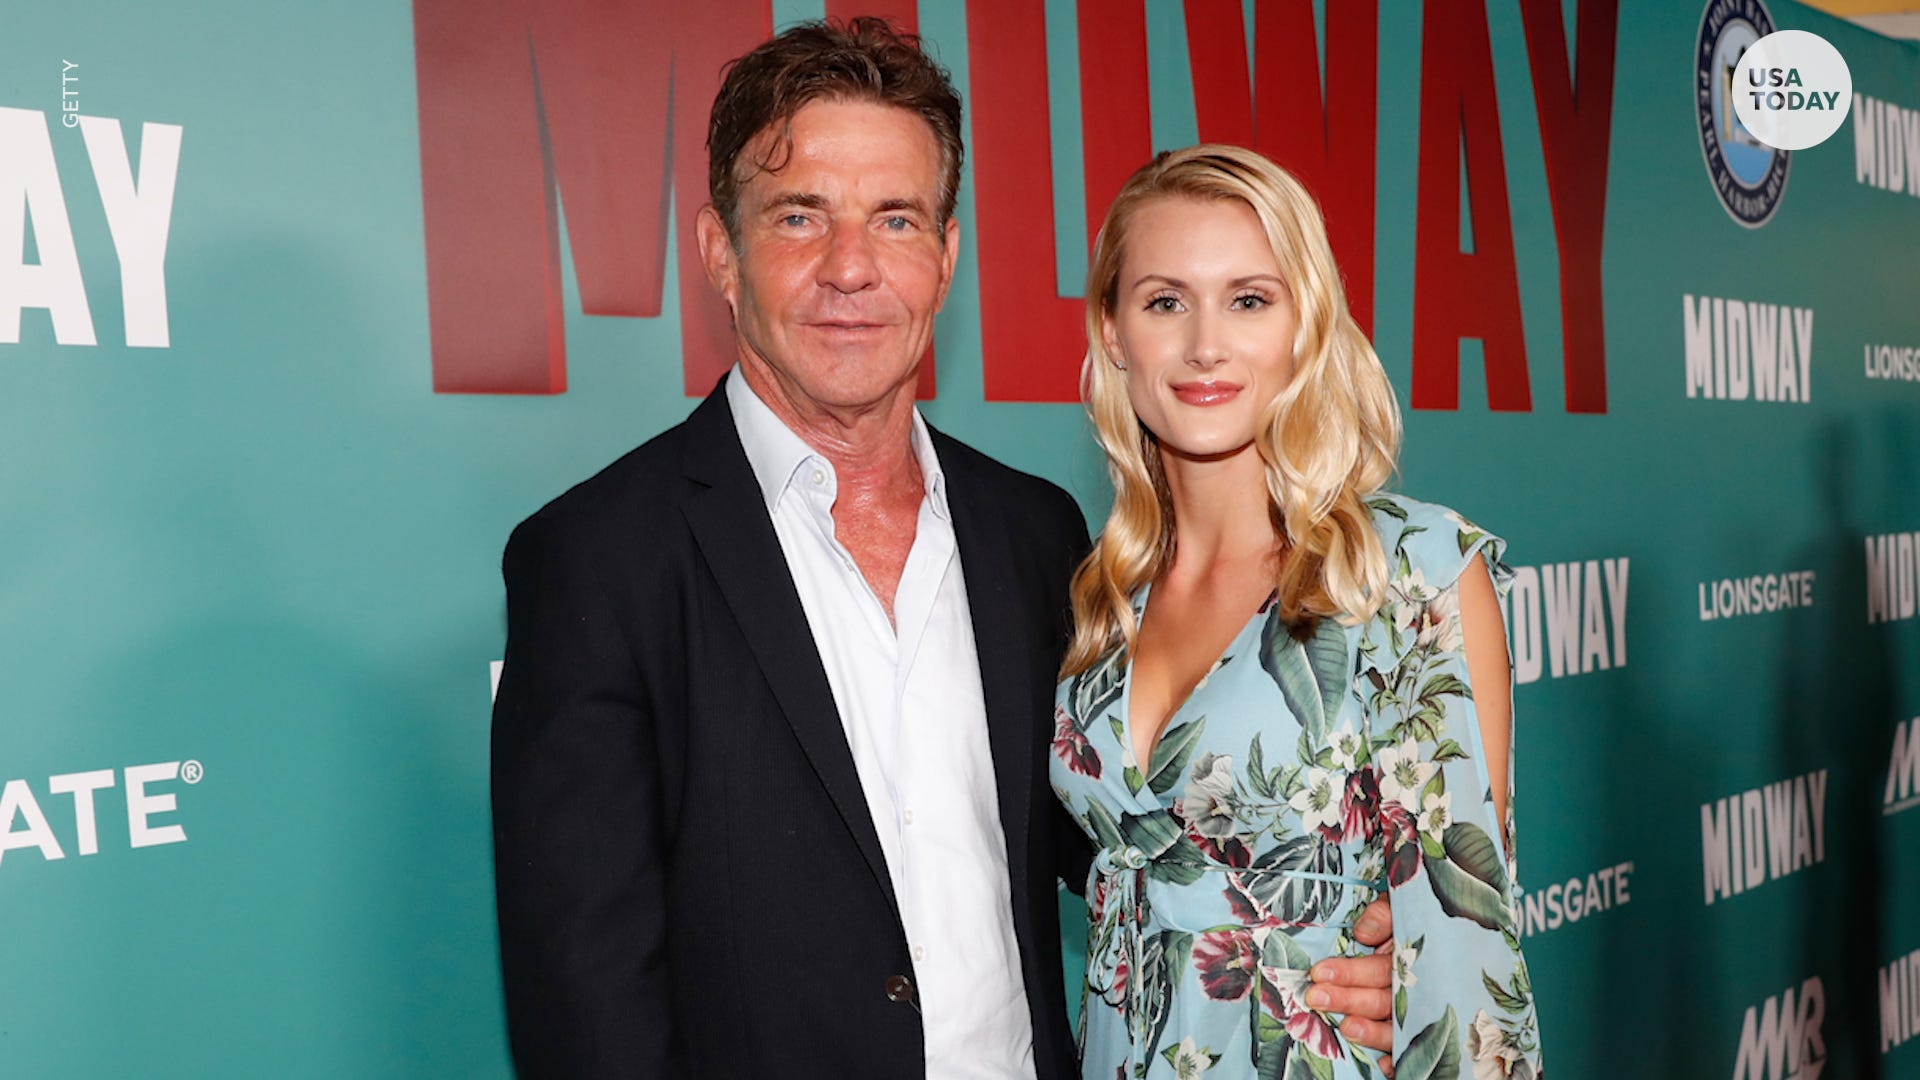 Dennis Quaid, 65, is engaged to 26-year-old Laura Savoie his 'Parent Trap' fiancée reacts